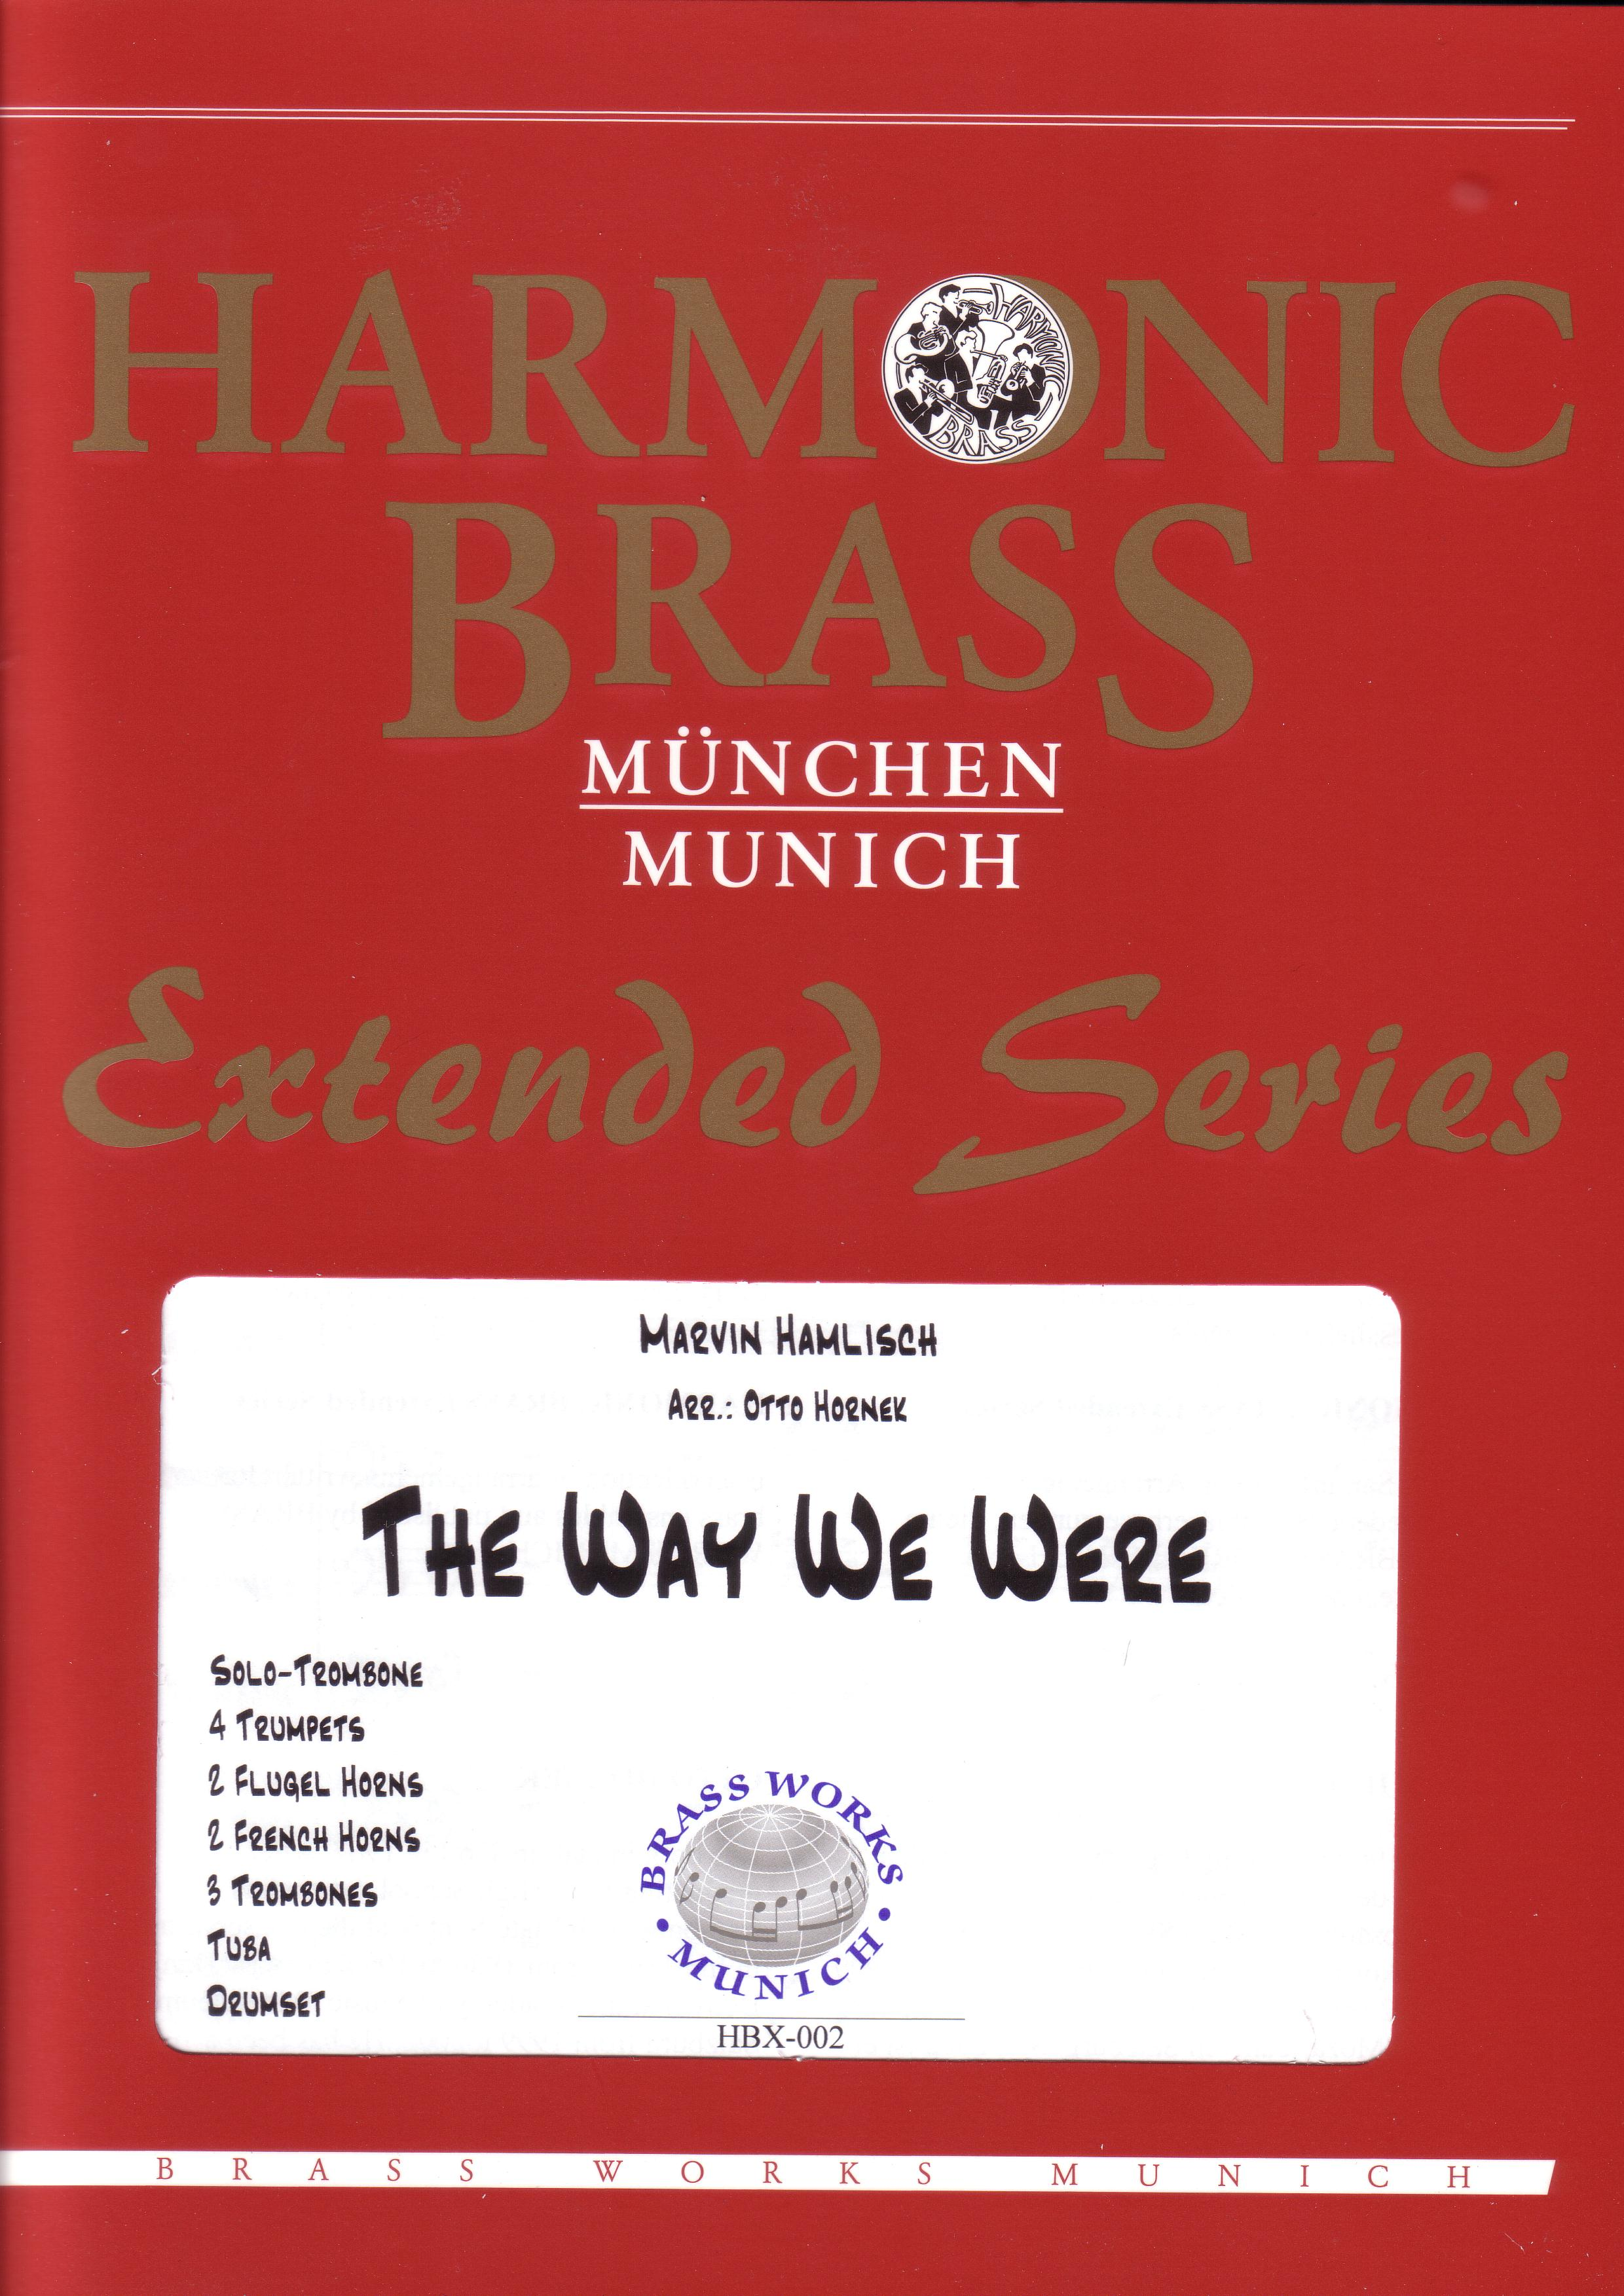 THE WAY WE WERE (featuring solo trombone)